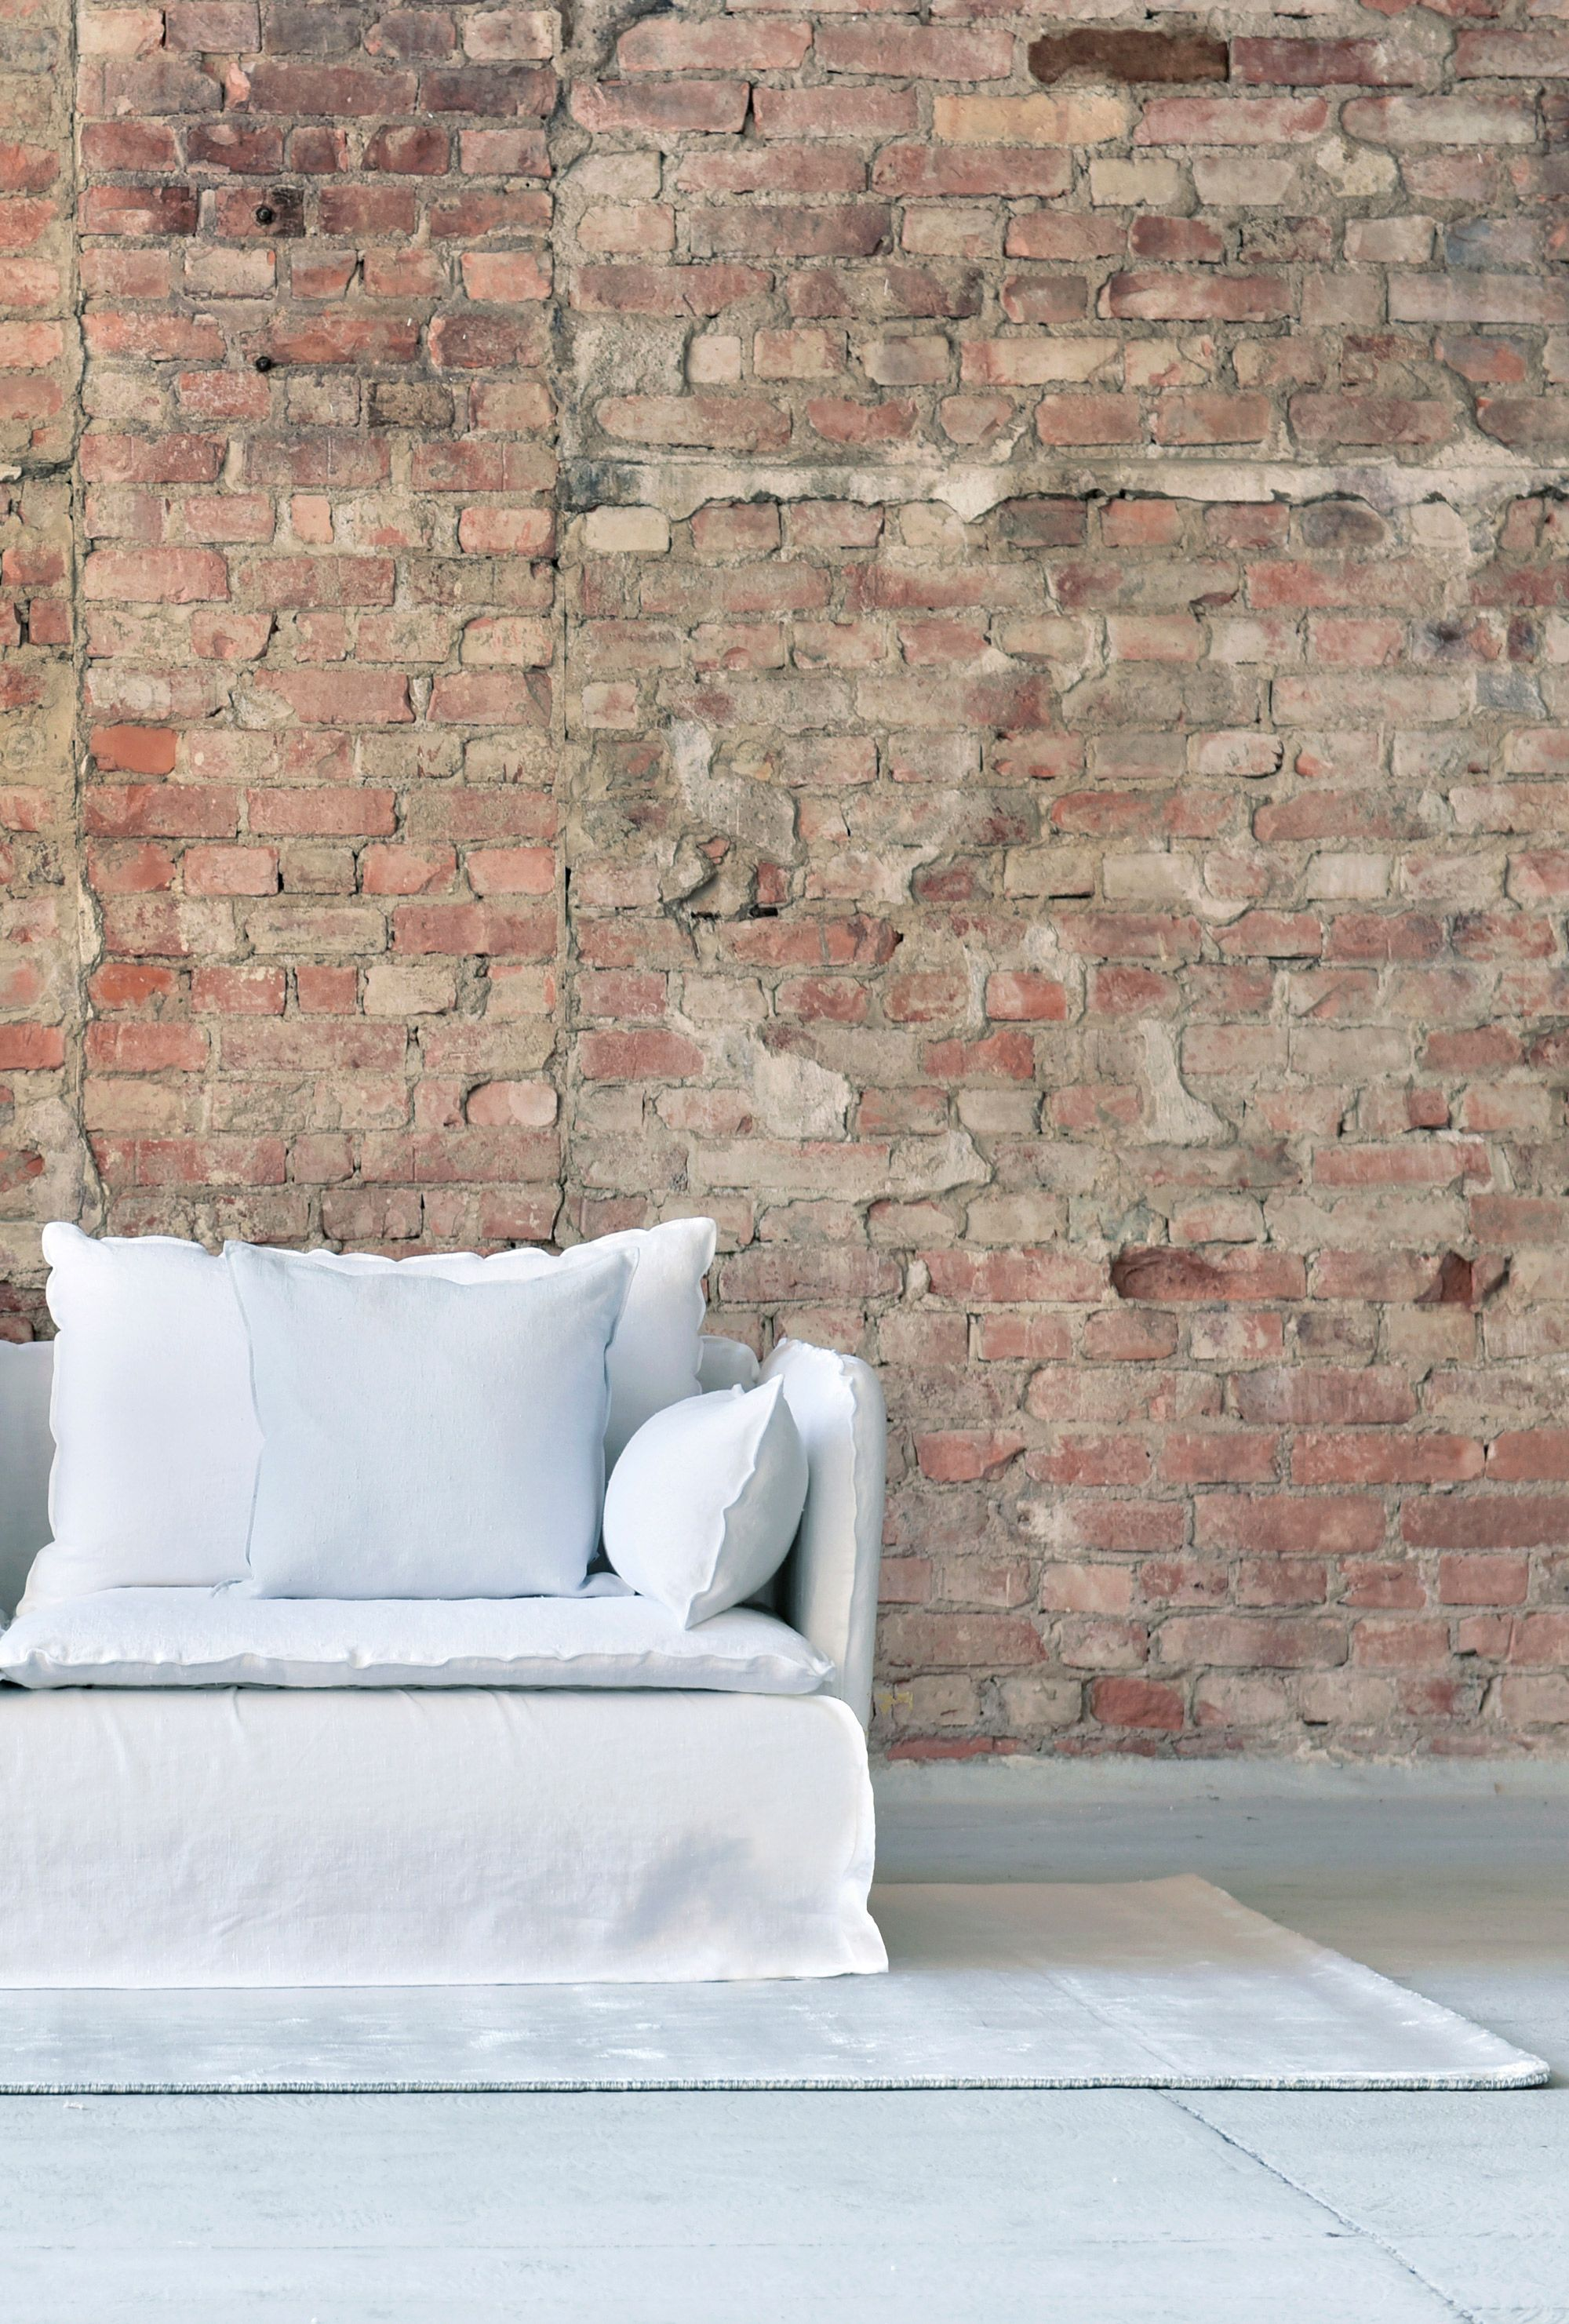 White Linen Sofa - Red Brick Wall - Modern Living